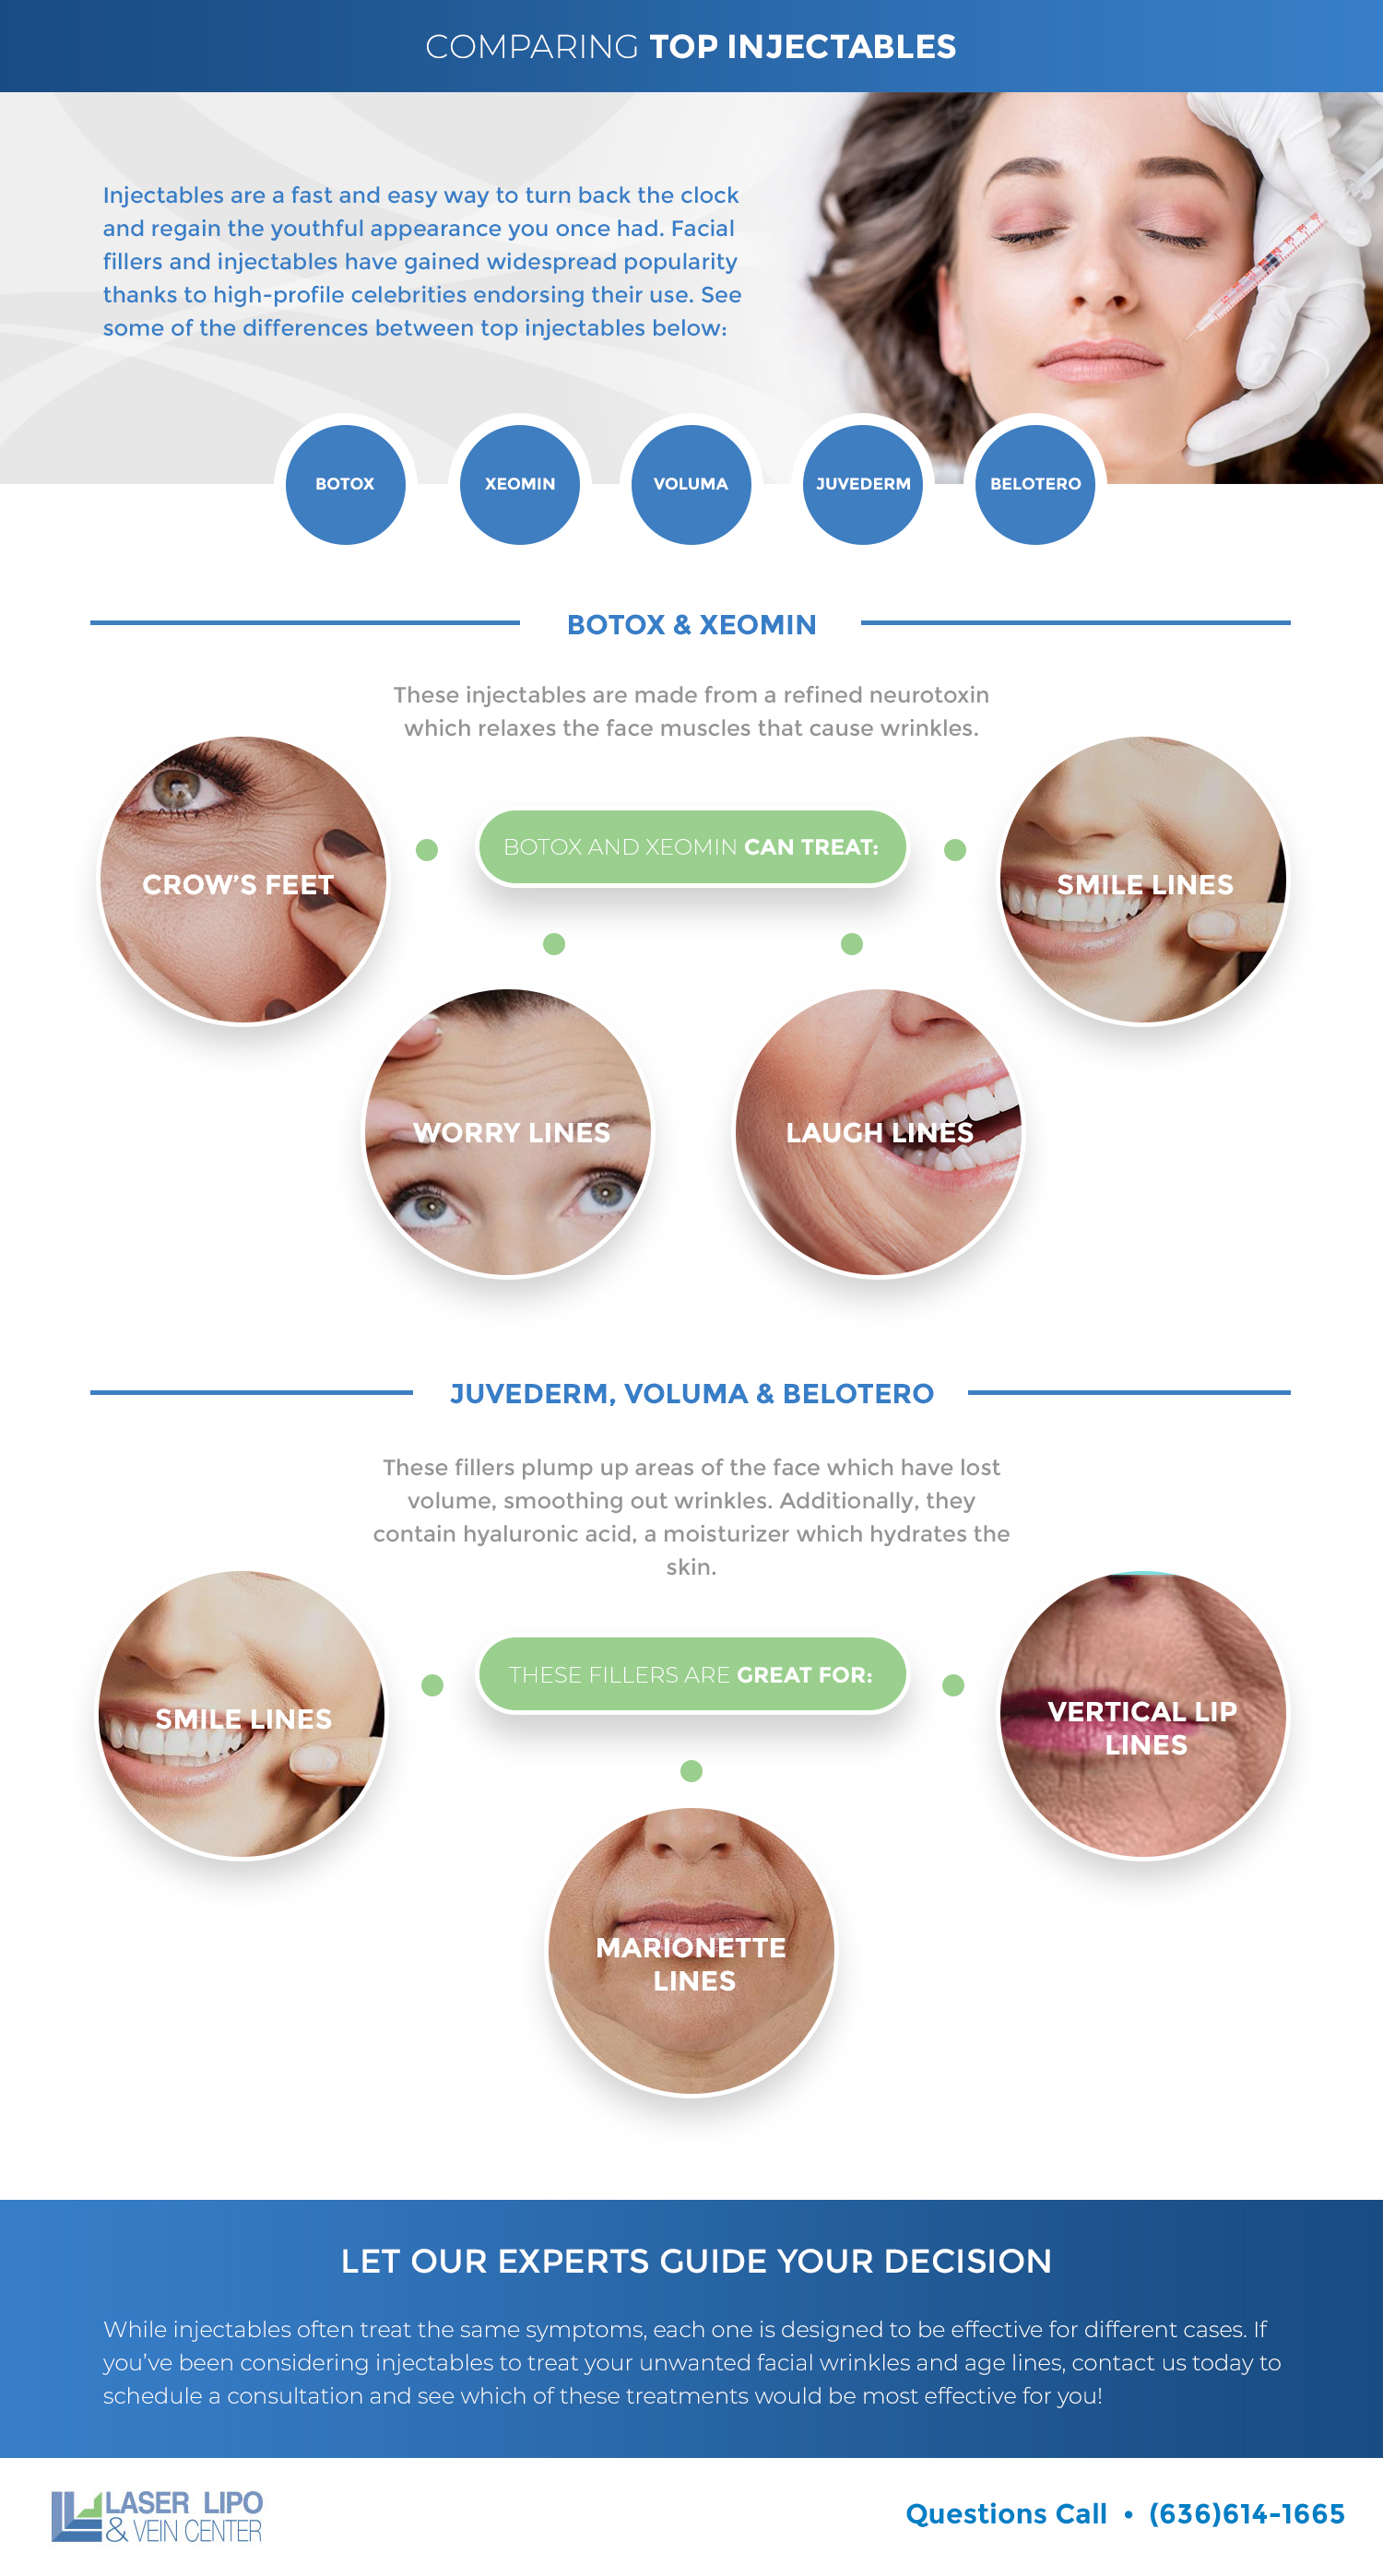 Comparing Top Injectable